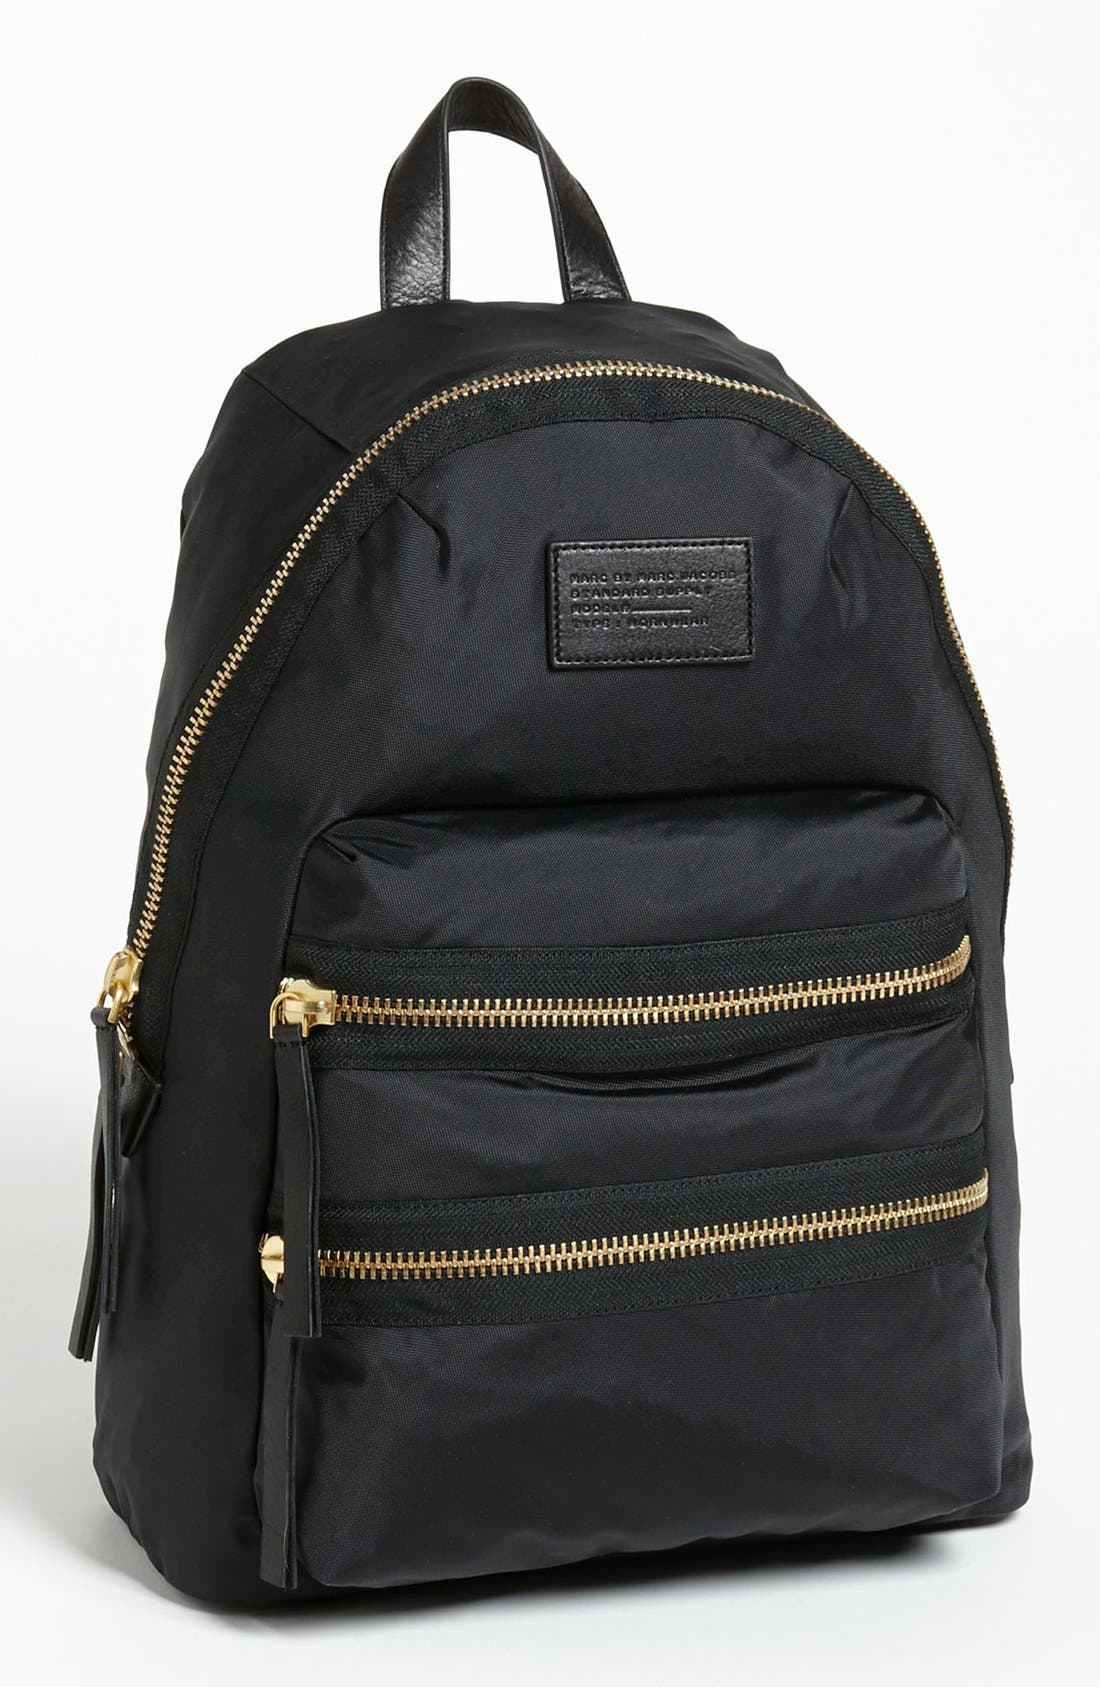 MARC BY MARC JACOBS 'Domo Arigato Packrat' Backpack,                             Main thumbnail 1, color,                             001